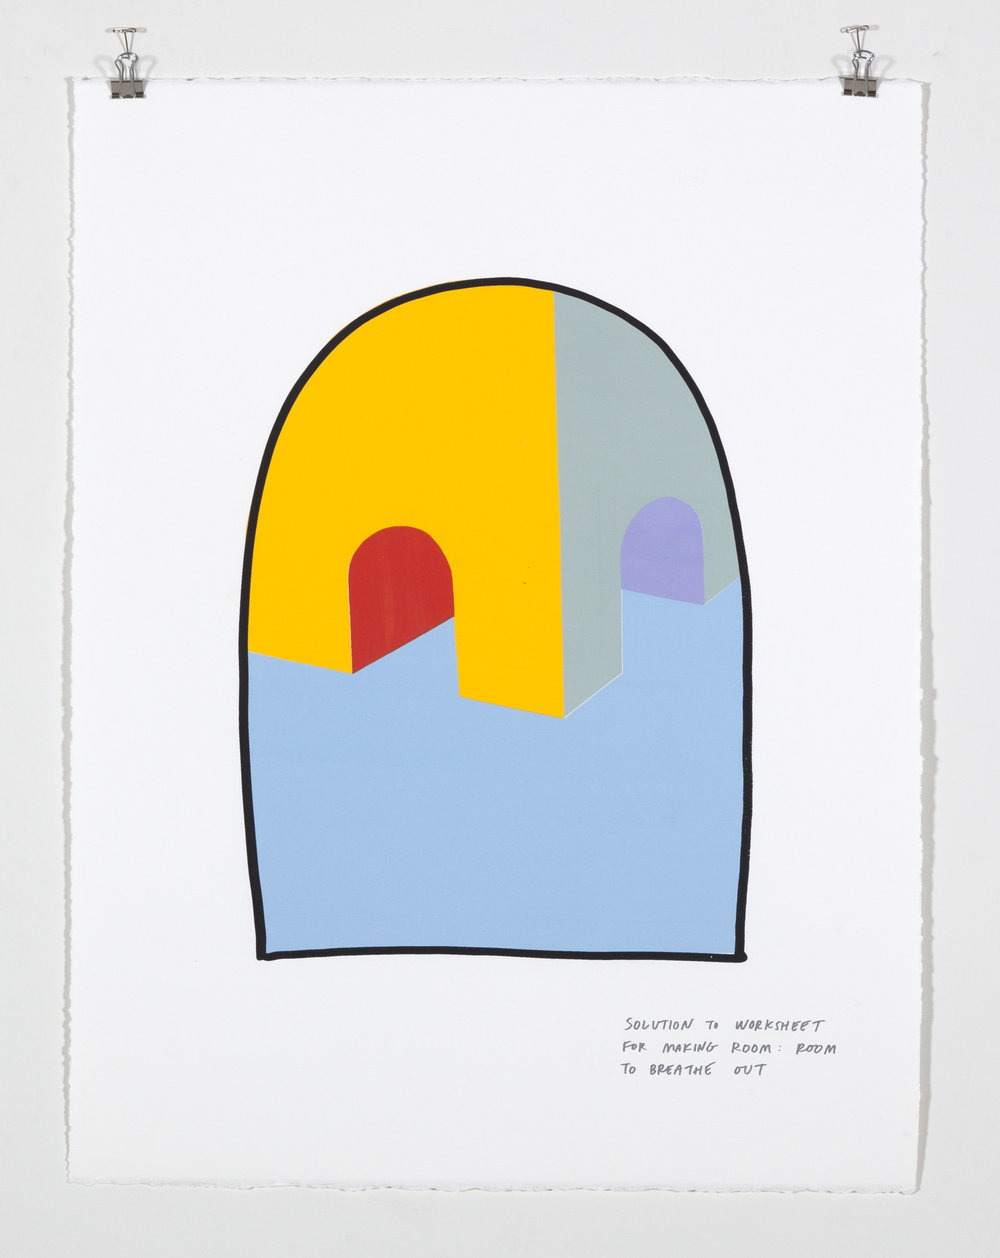 Solution to Worksheet for Making Room: Room to Breathe Out,  2018  Seven color silkscreen print on paper 19 7/8 x 25 7/8 inches